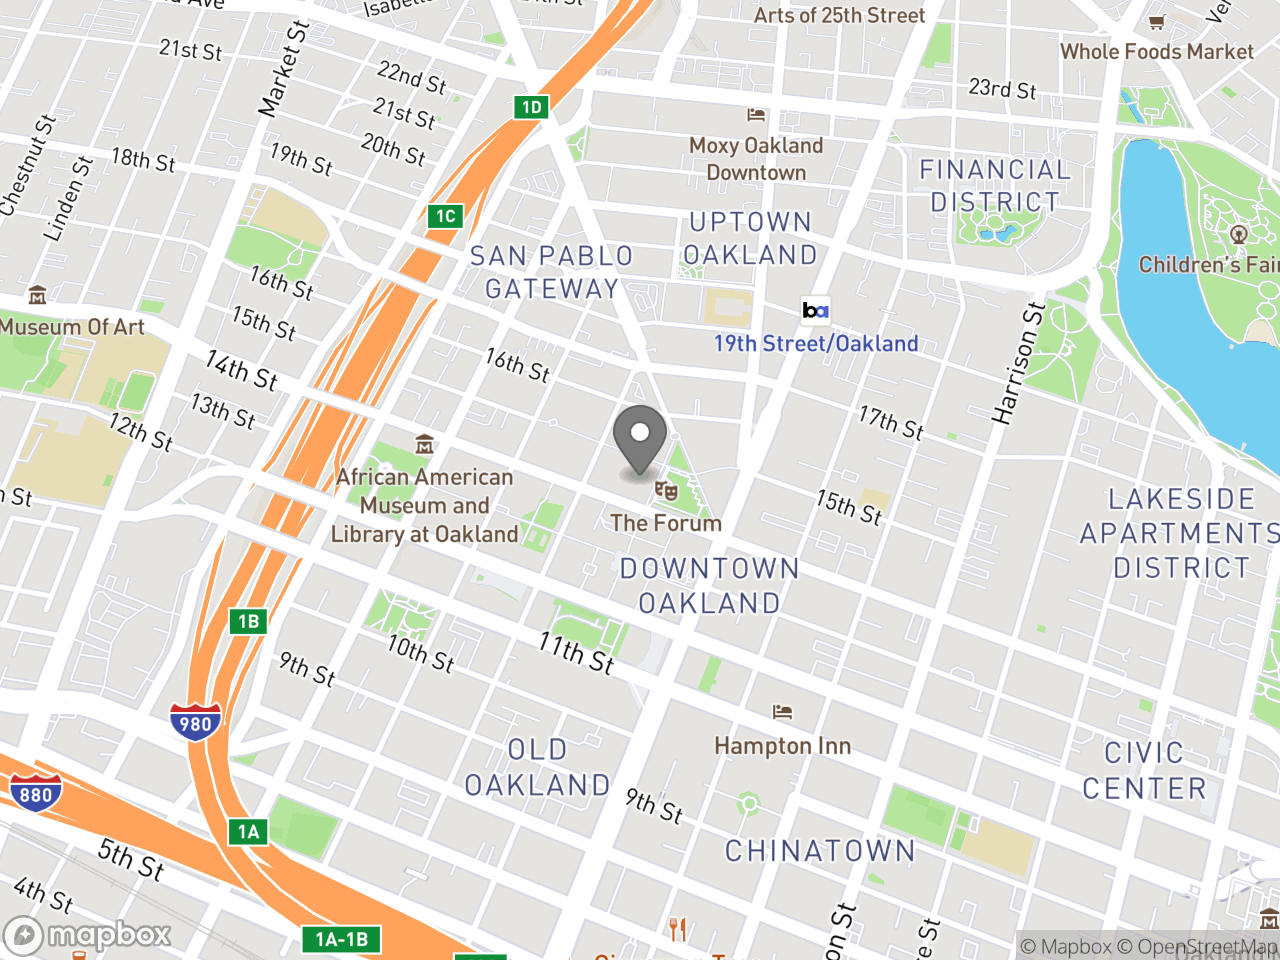 Map image for City Clerk, located at 1 Frank H Ogawa Plaza in Oakland, CA 94612